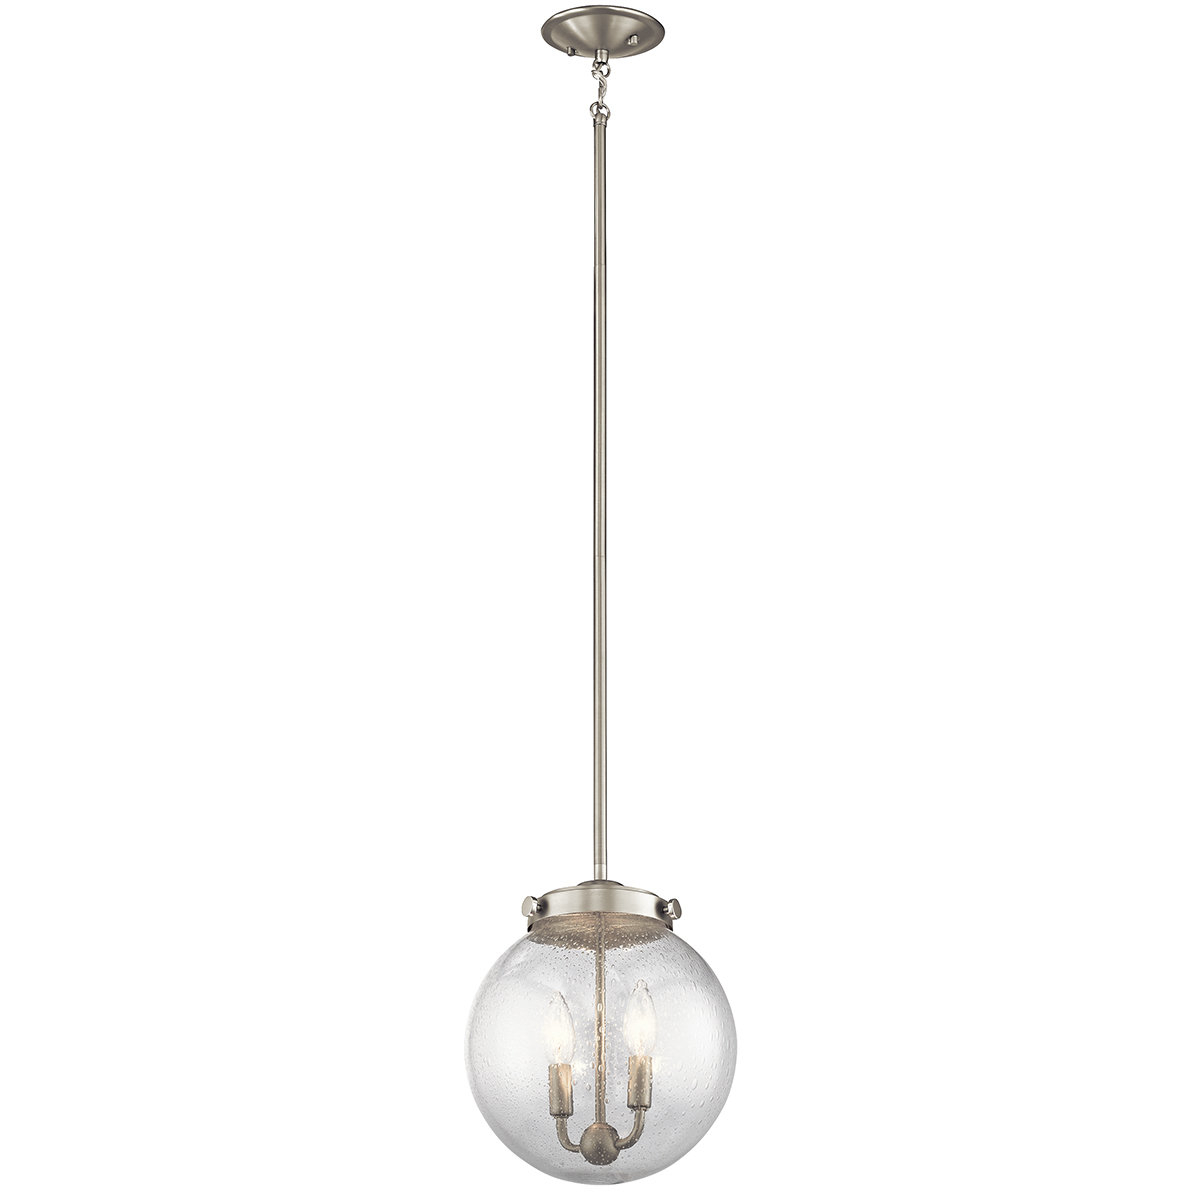 Widely Used Adamell 1 Light Single Globe Pendant With Regard To Betsy 1 Light Single Globe Pendants (View 17 of 20)